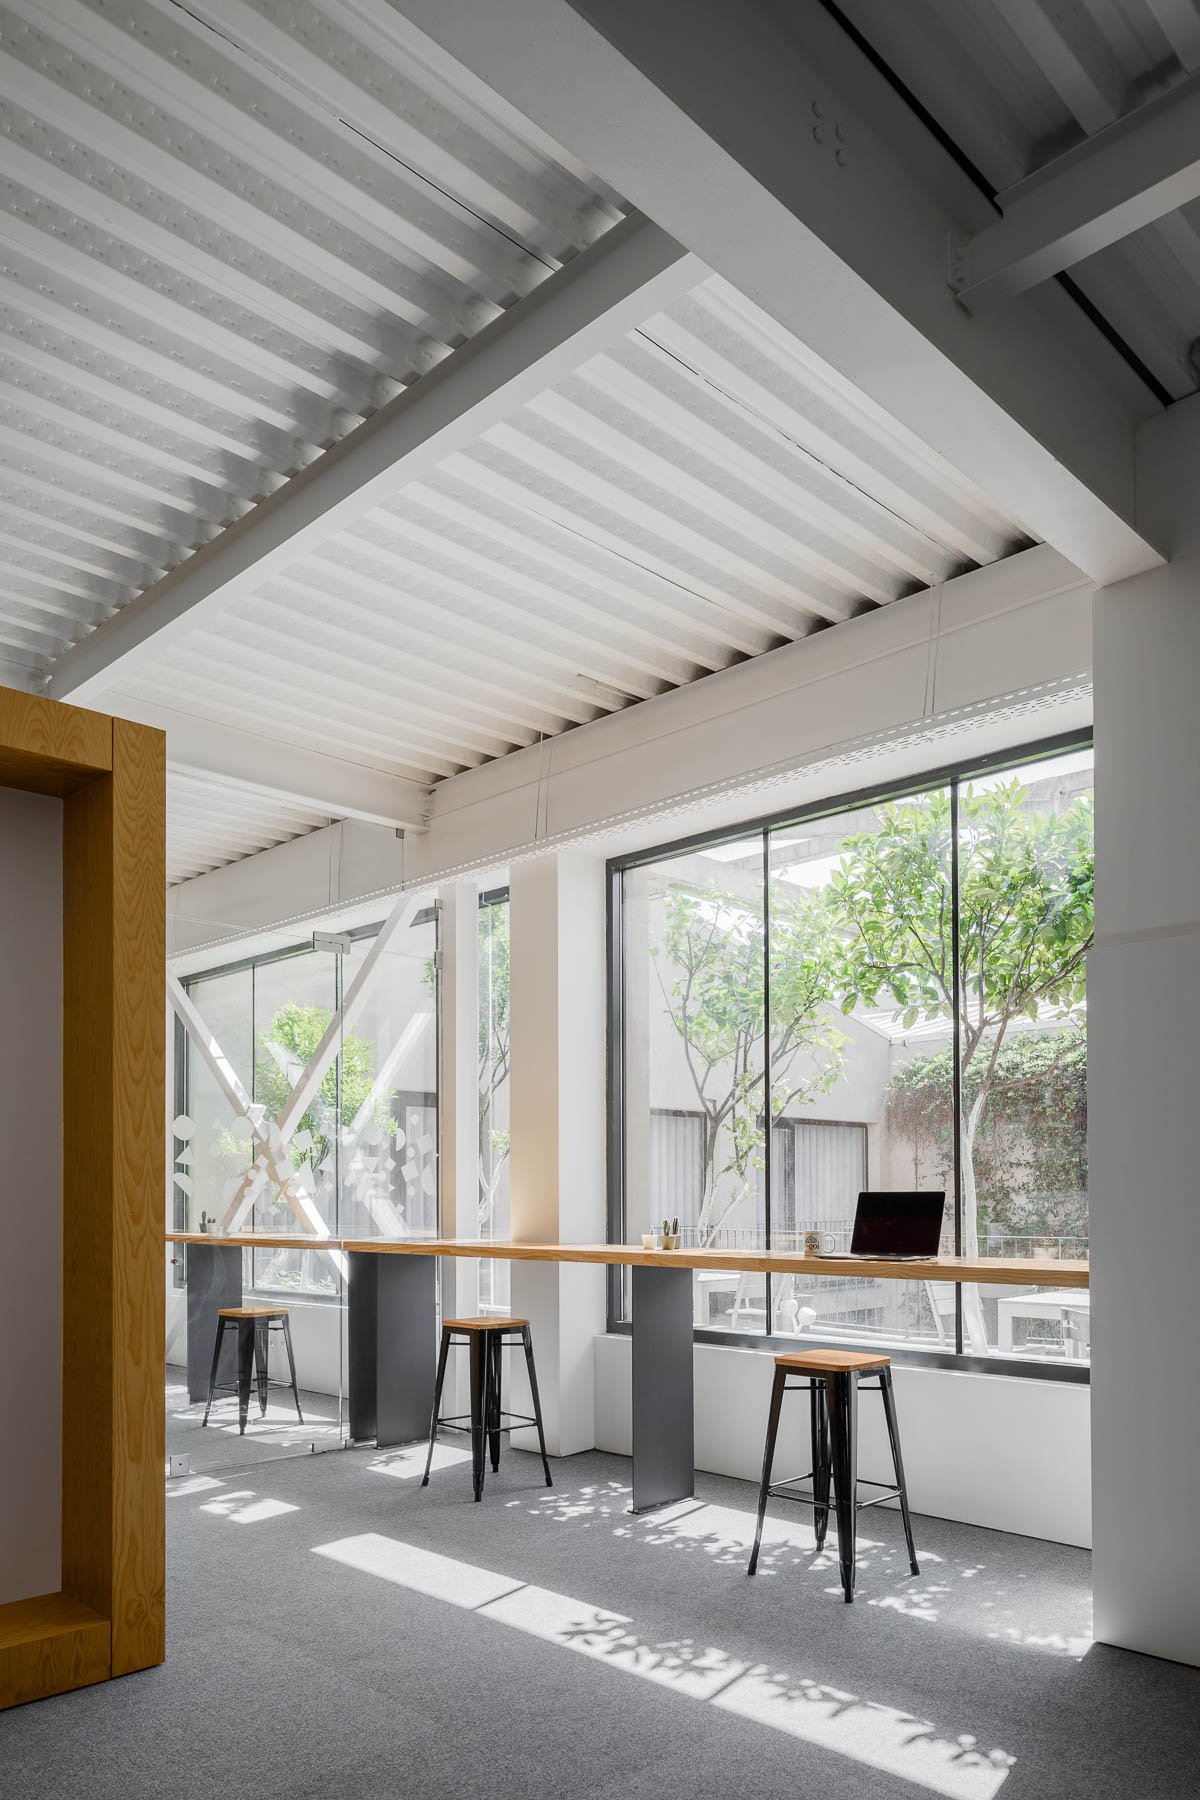 A modern office with seating by the windows that take advantage of the natural light.